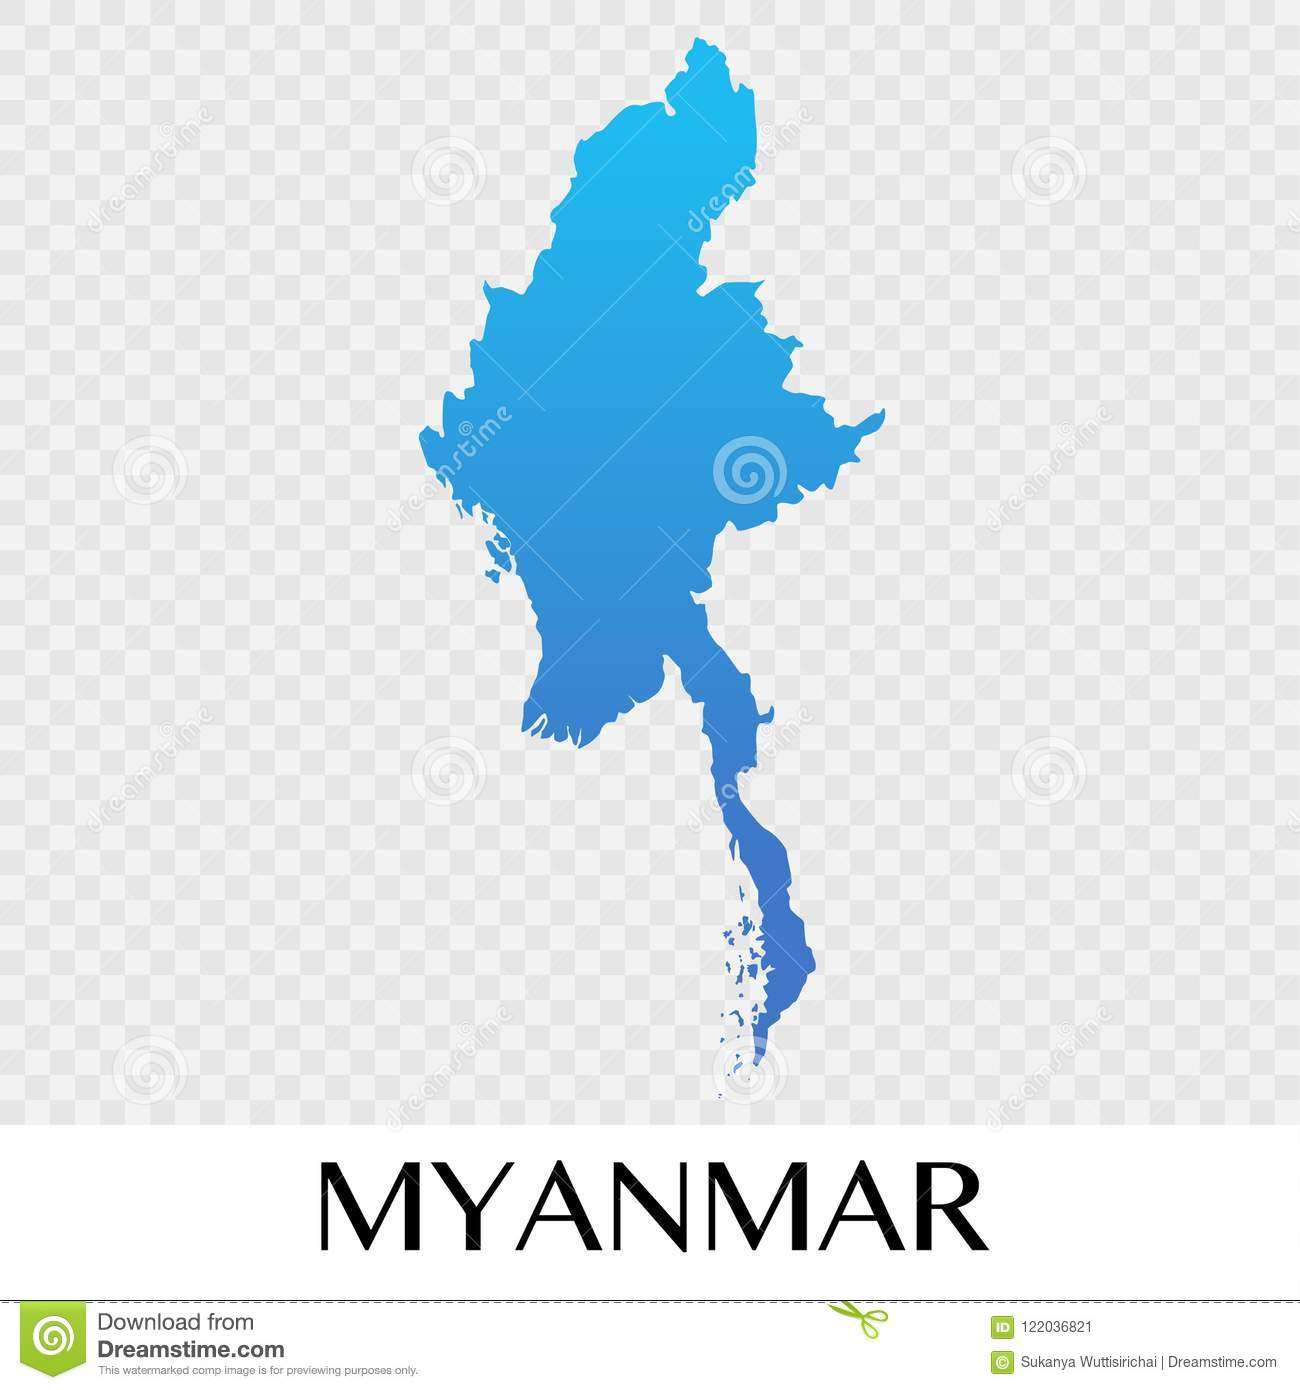 Myanmar On Map Of Asia.Myanmar Map In Asia Continent Illustration Design Stock Vector